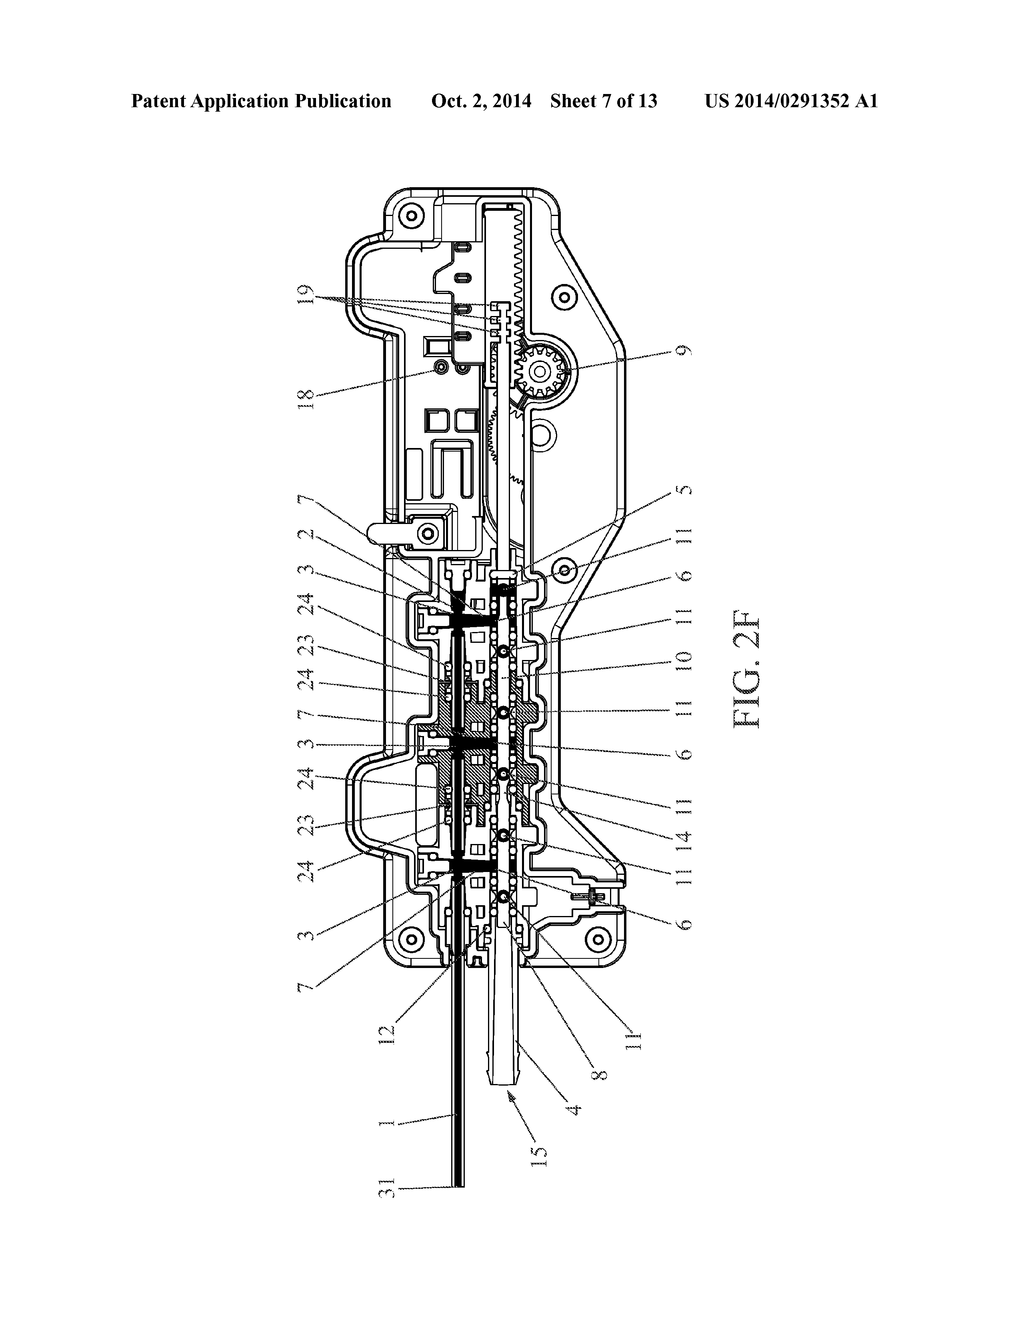 Water Vending Machine Diagram Electrical Wiring Diagrams Dispenser For Instant Beverage Machines And Coke